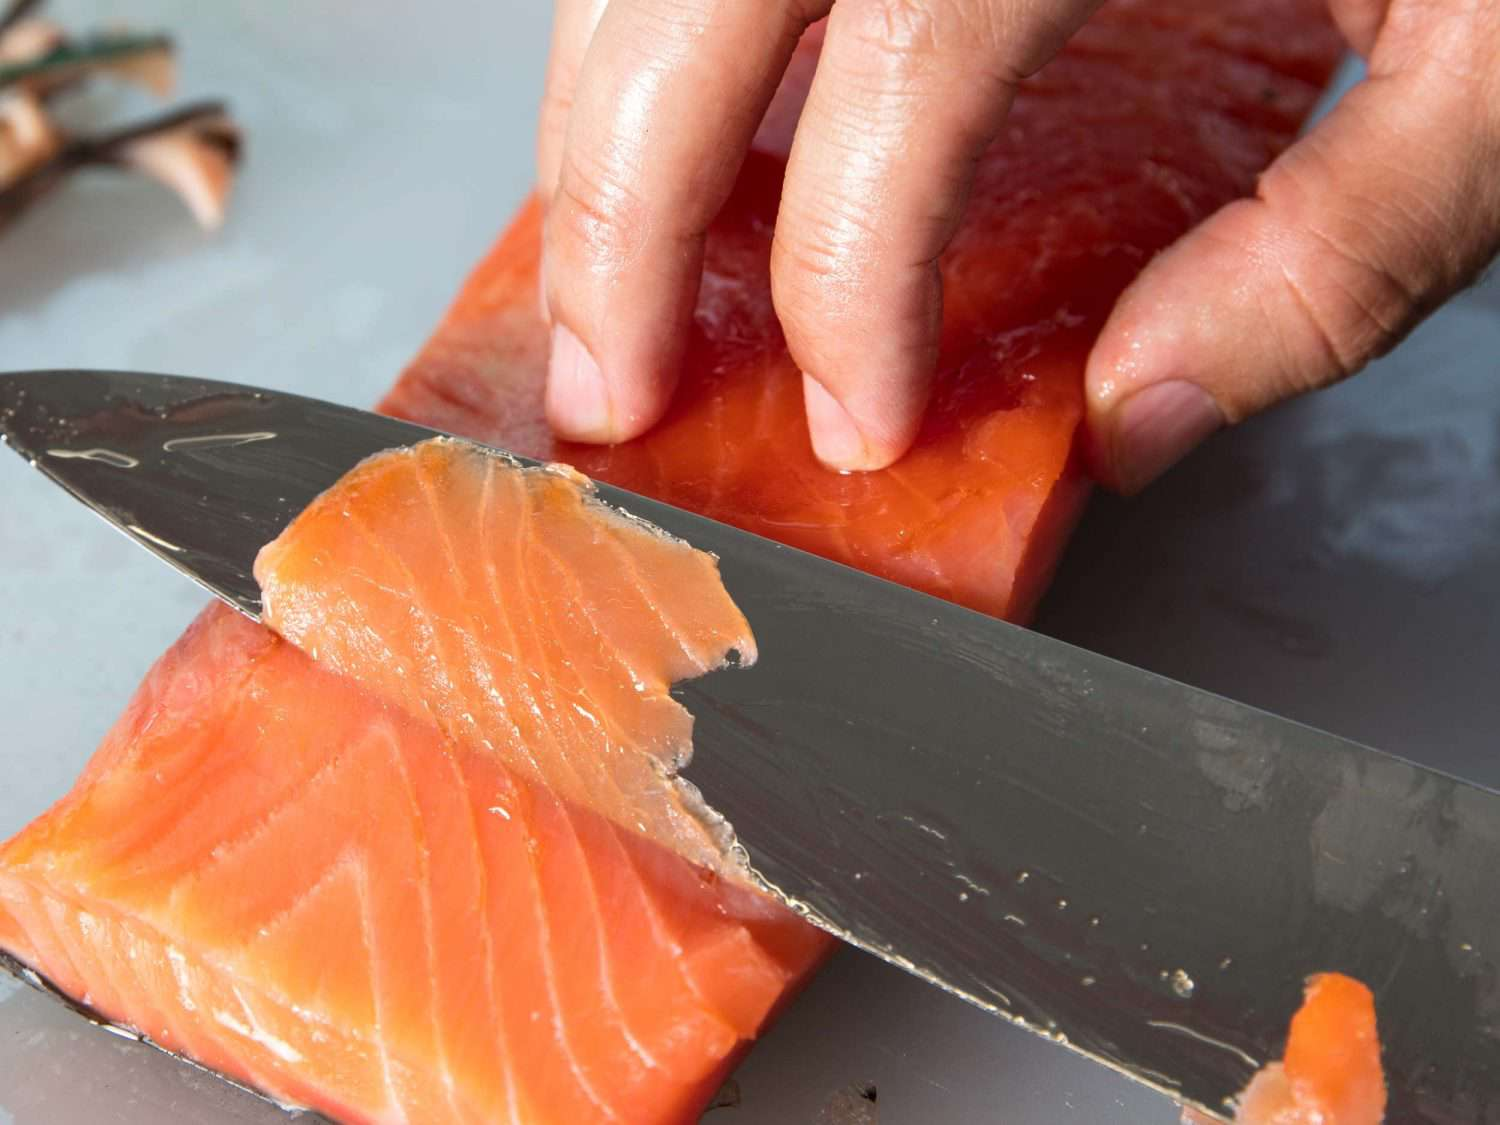 Slicing thin pieces of salmon with the blade of a chef's knife